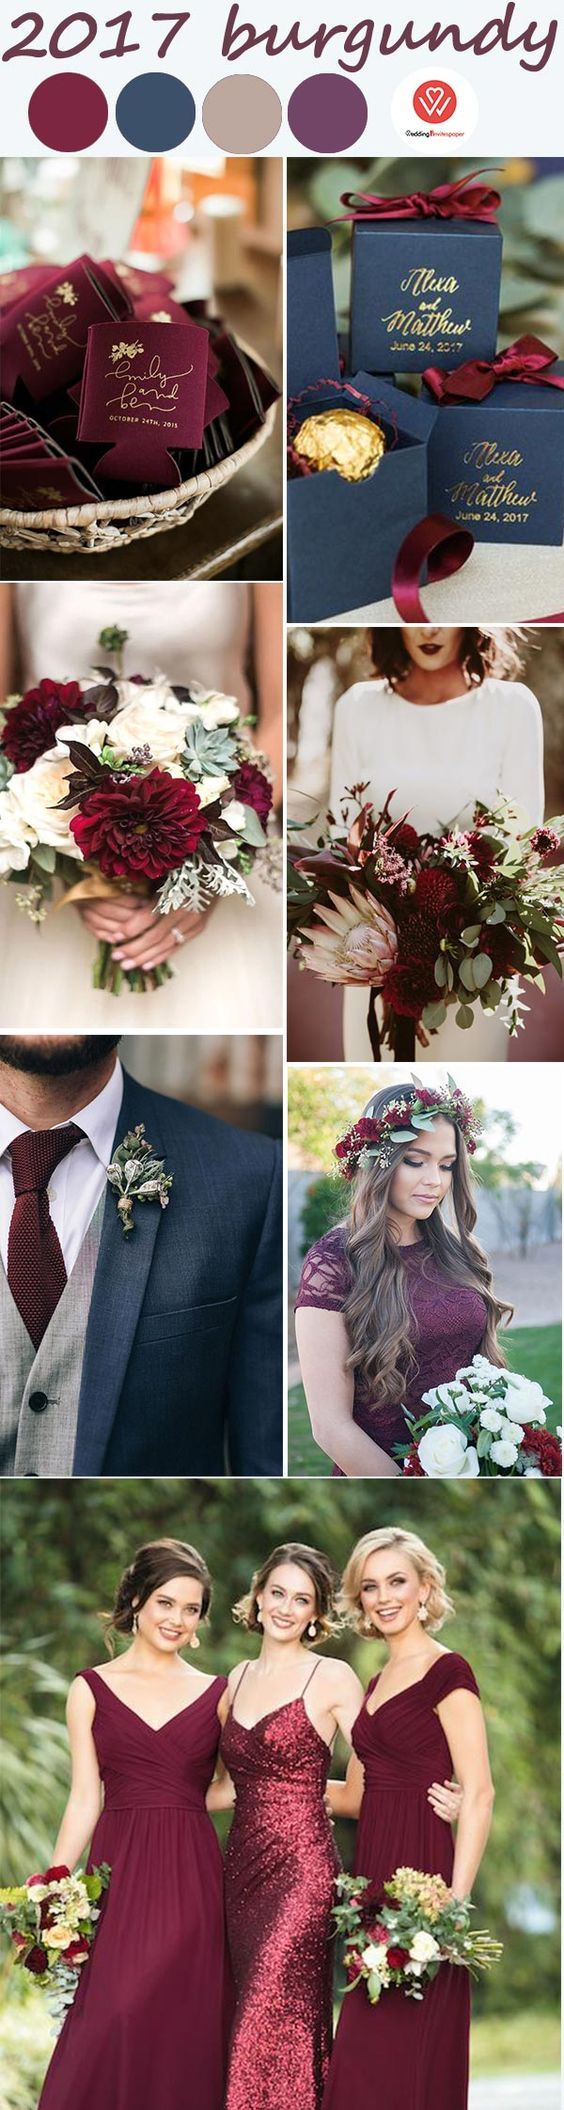 Wedding decorations themes ideas october 2018 if you like our pin plz follow us then we will follow back thank